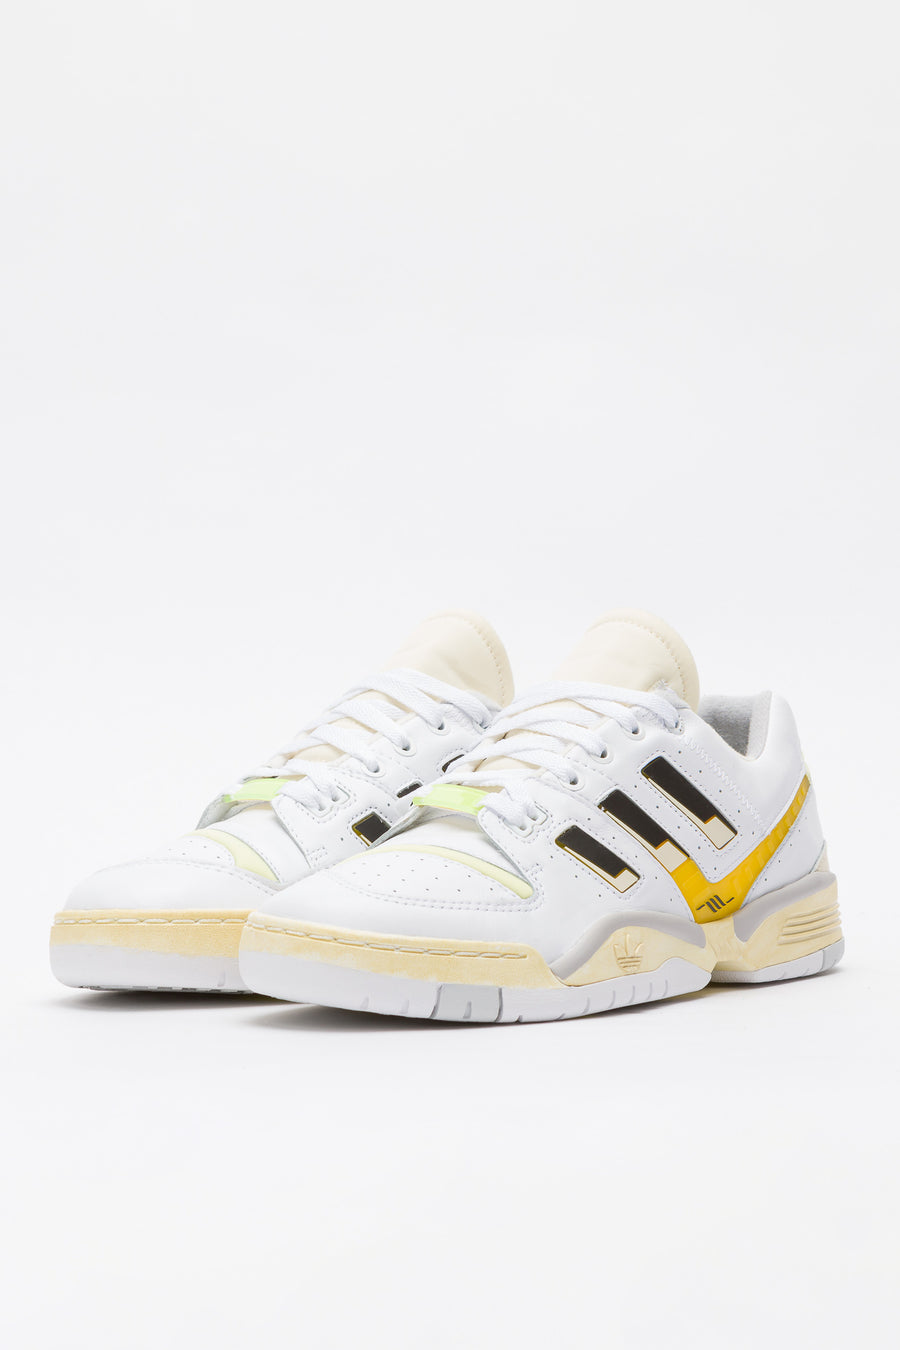 adidas Highs and Lows Torsion Edberg in White/Yellow/Black - Notre